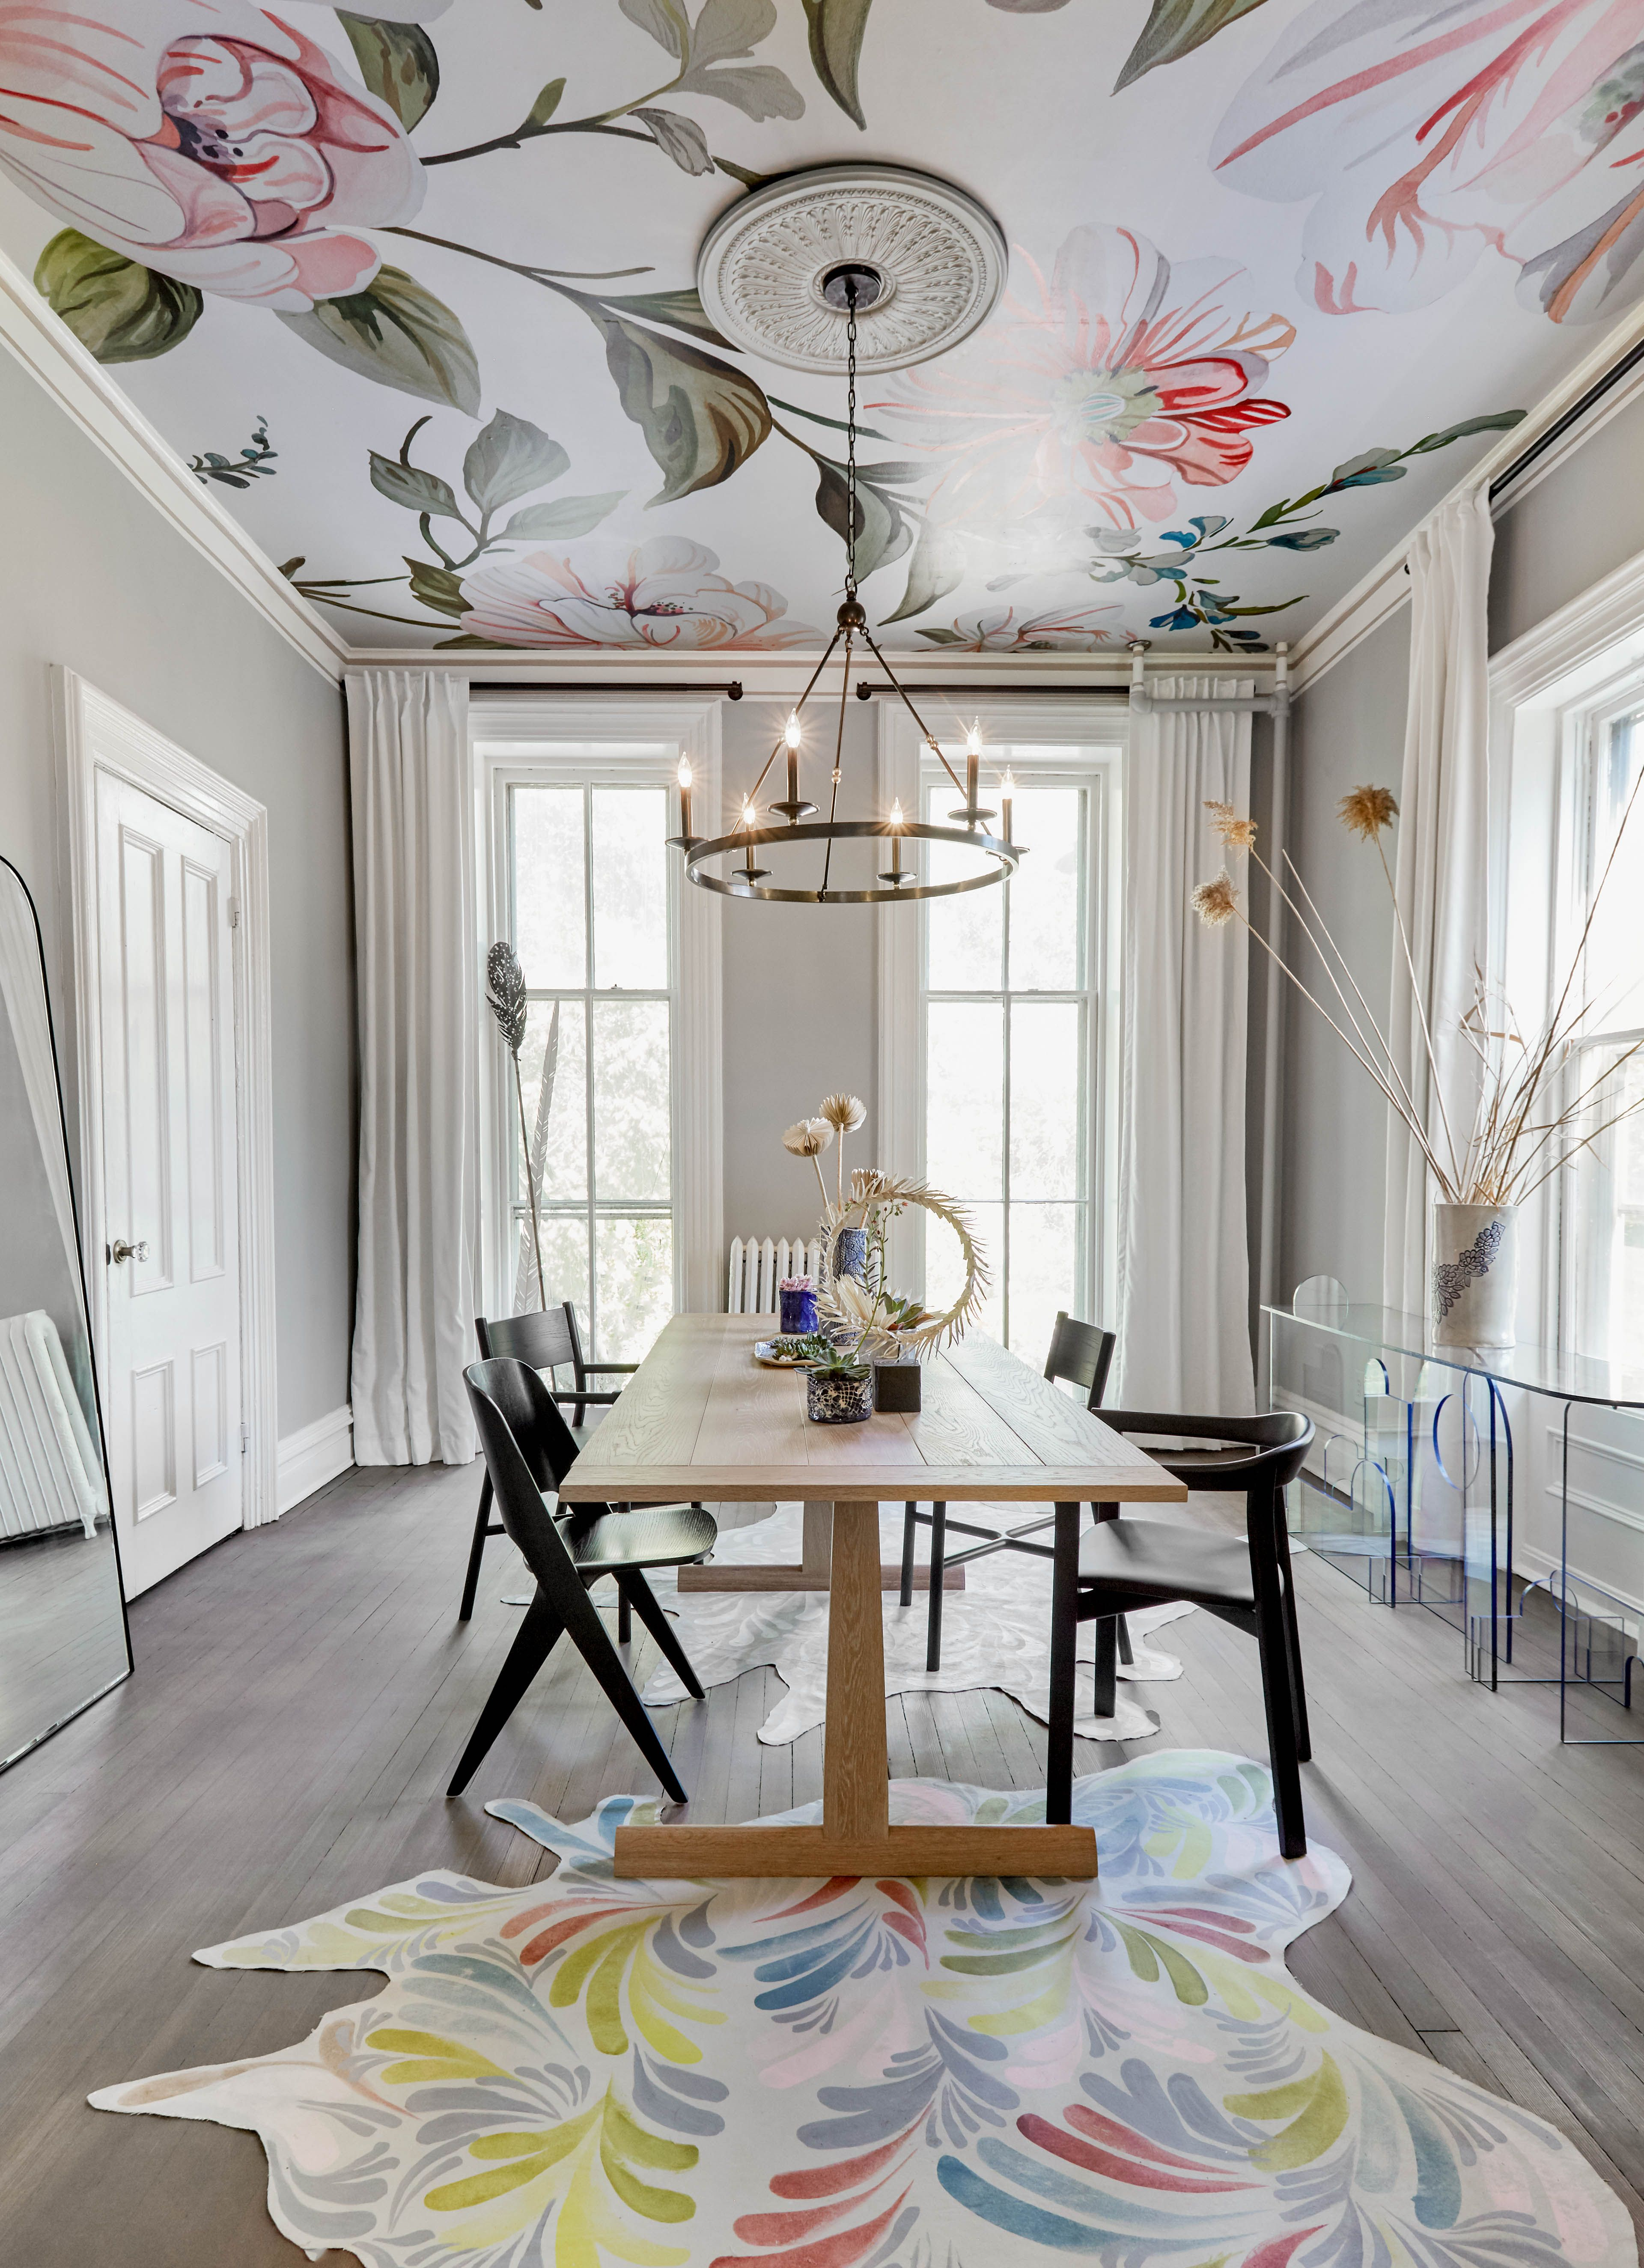 A Wallpapered Ceiling Is Our New Favorite Design Detail